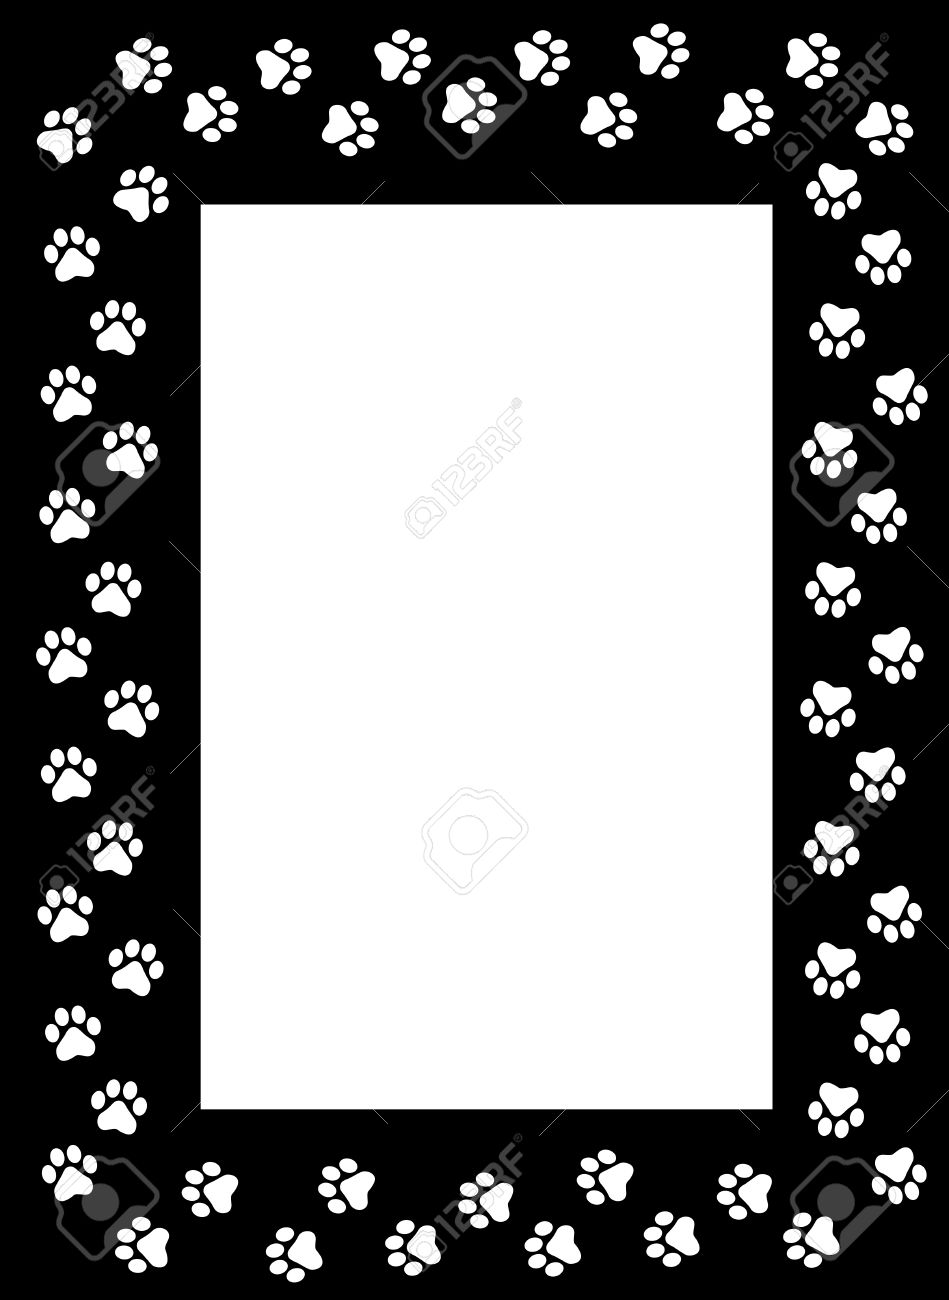 White Dog Paw Prints On Black Background Frame Border Royalty Free